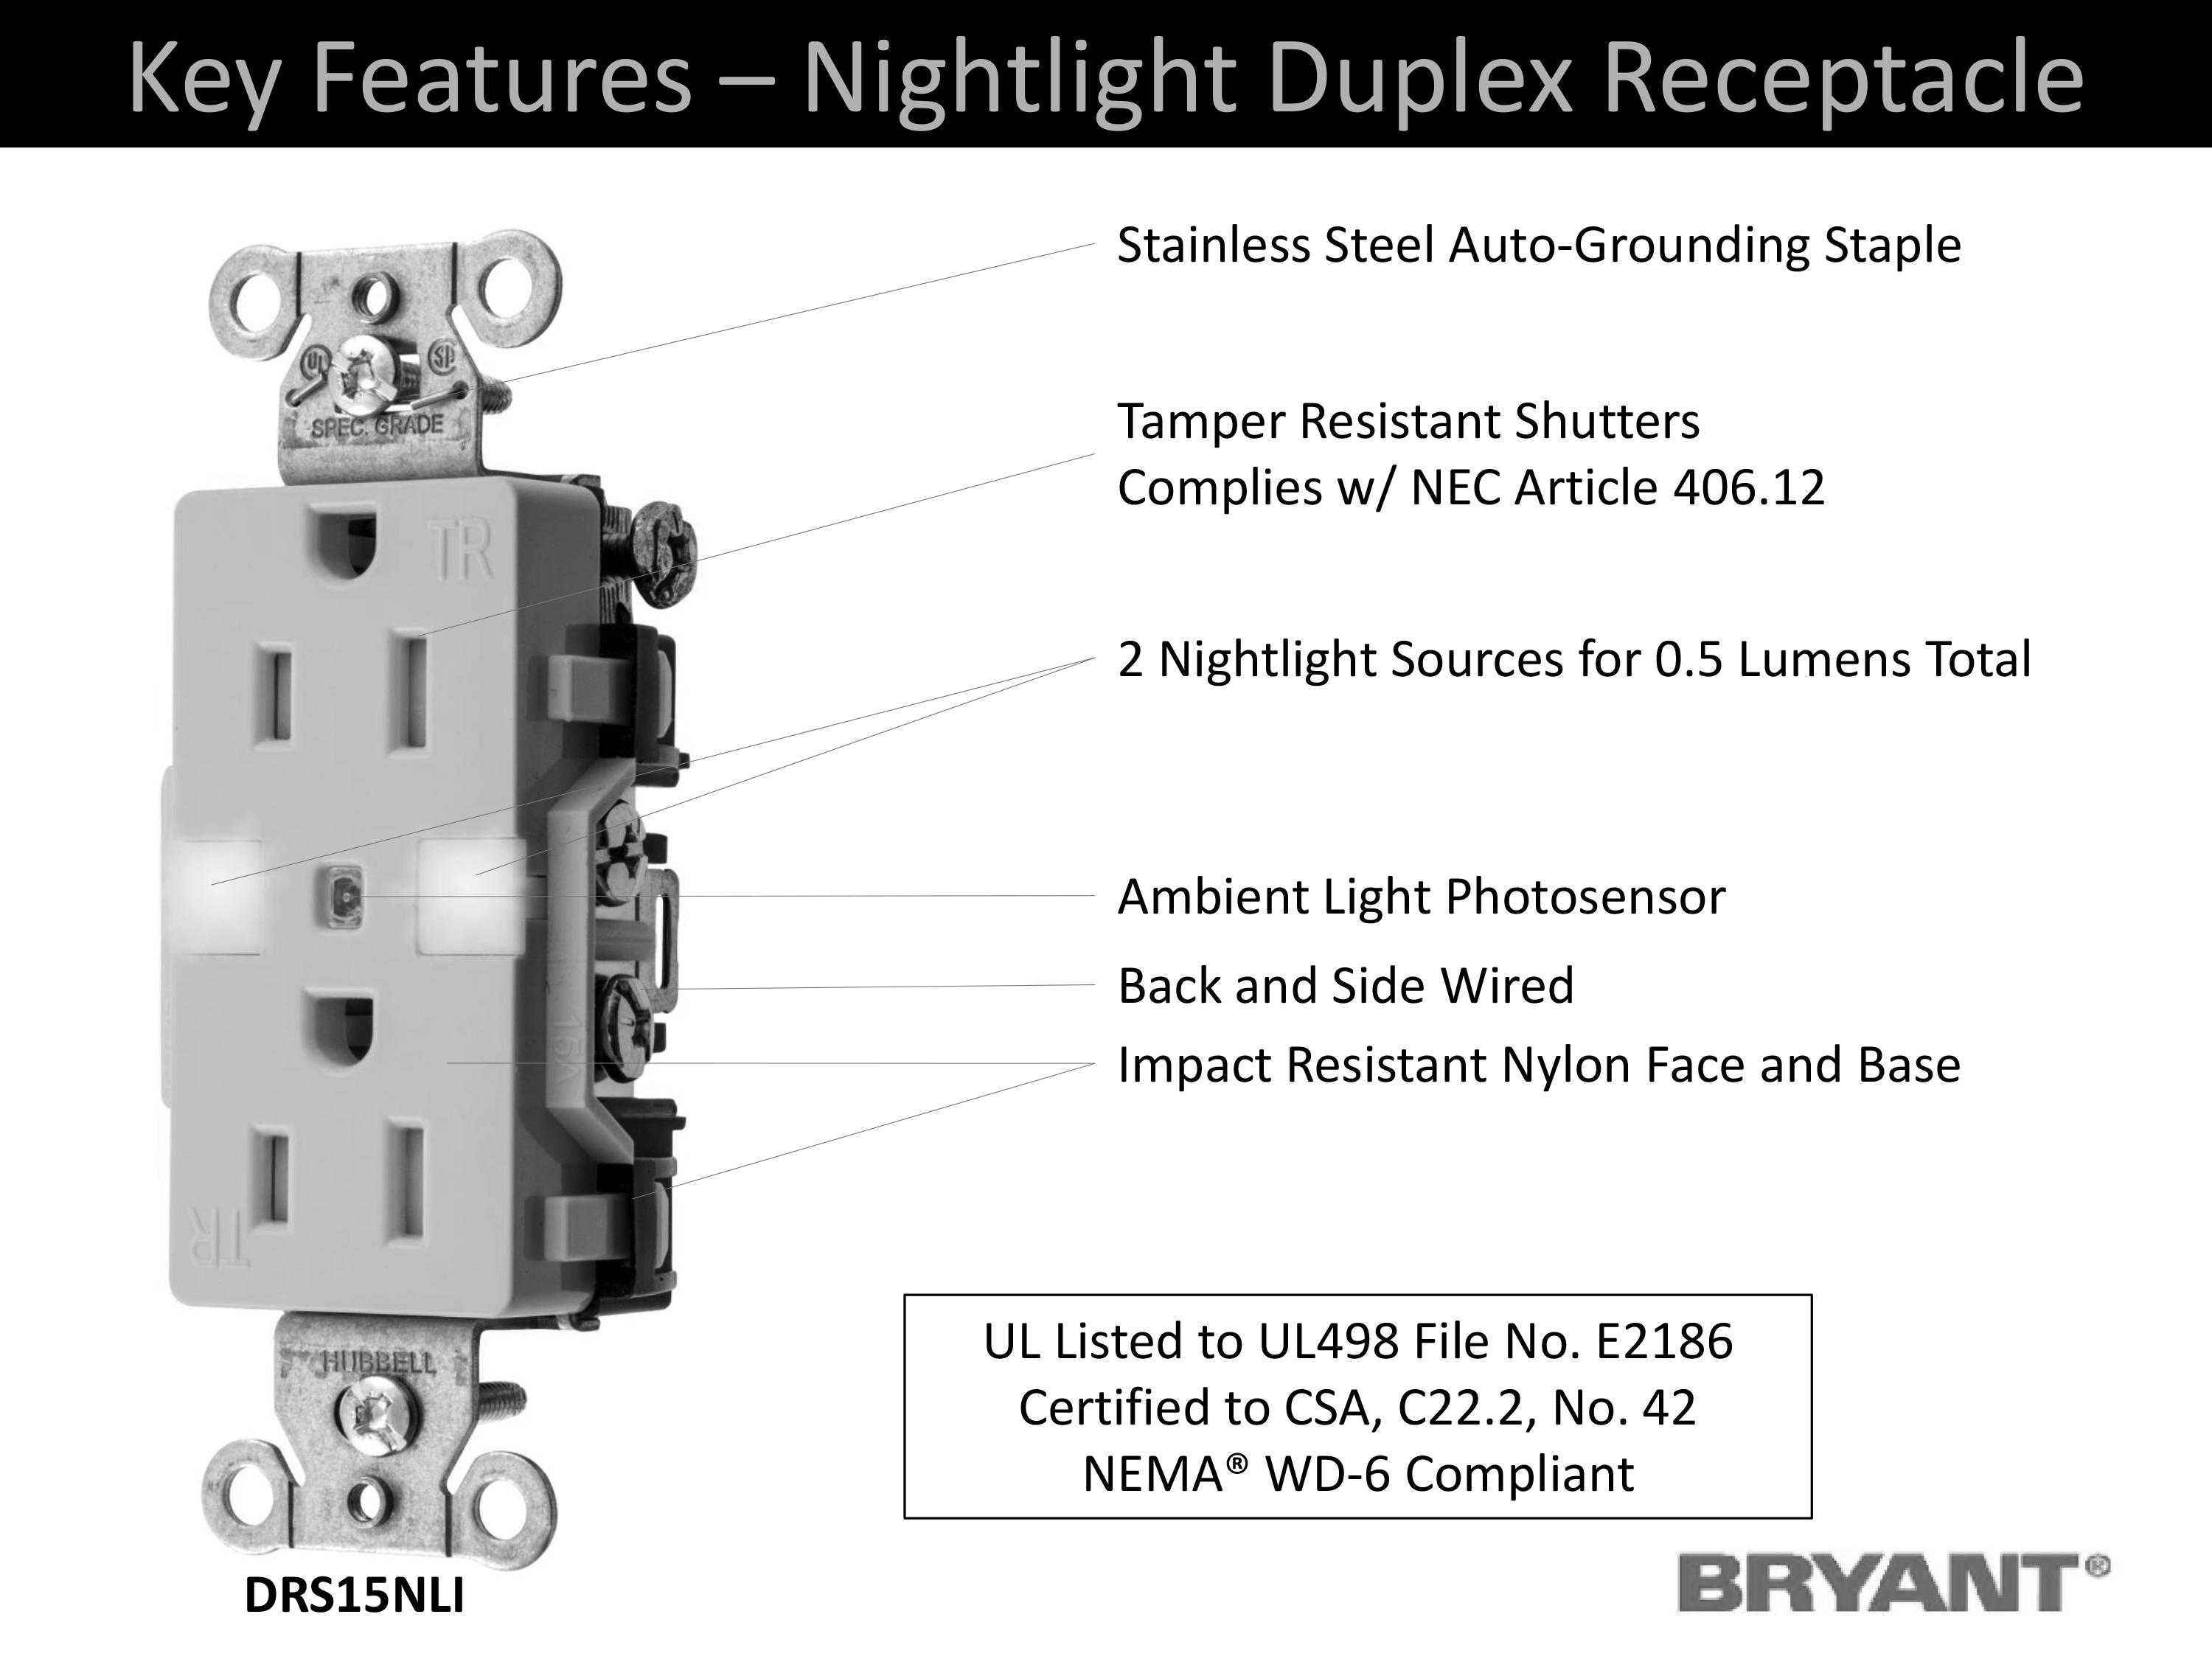 Bryant Electric Drs15nlla Combination Led Nightlight With Automatic Tamper Wiring Diagram For View Larger